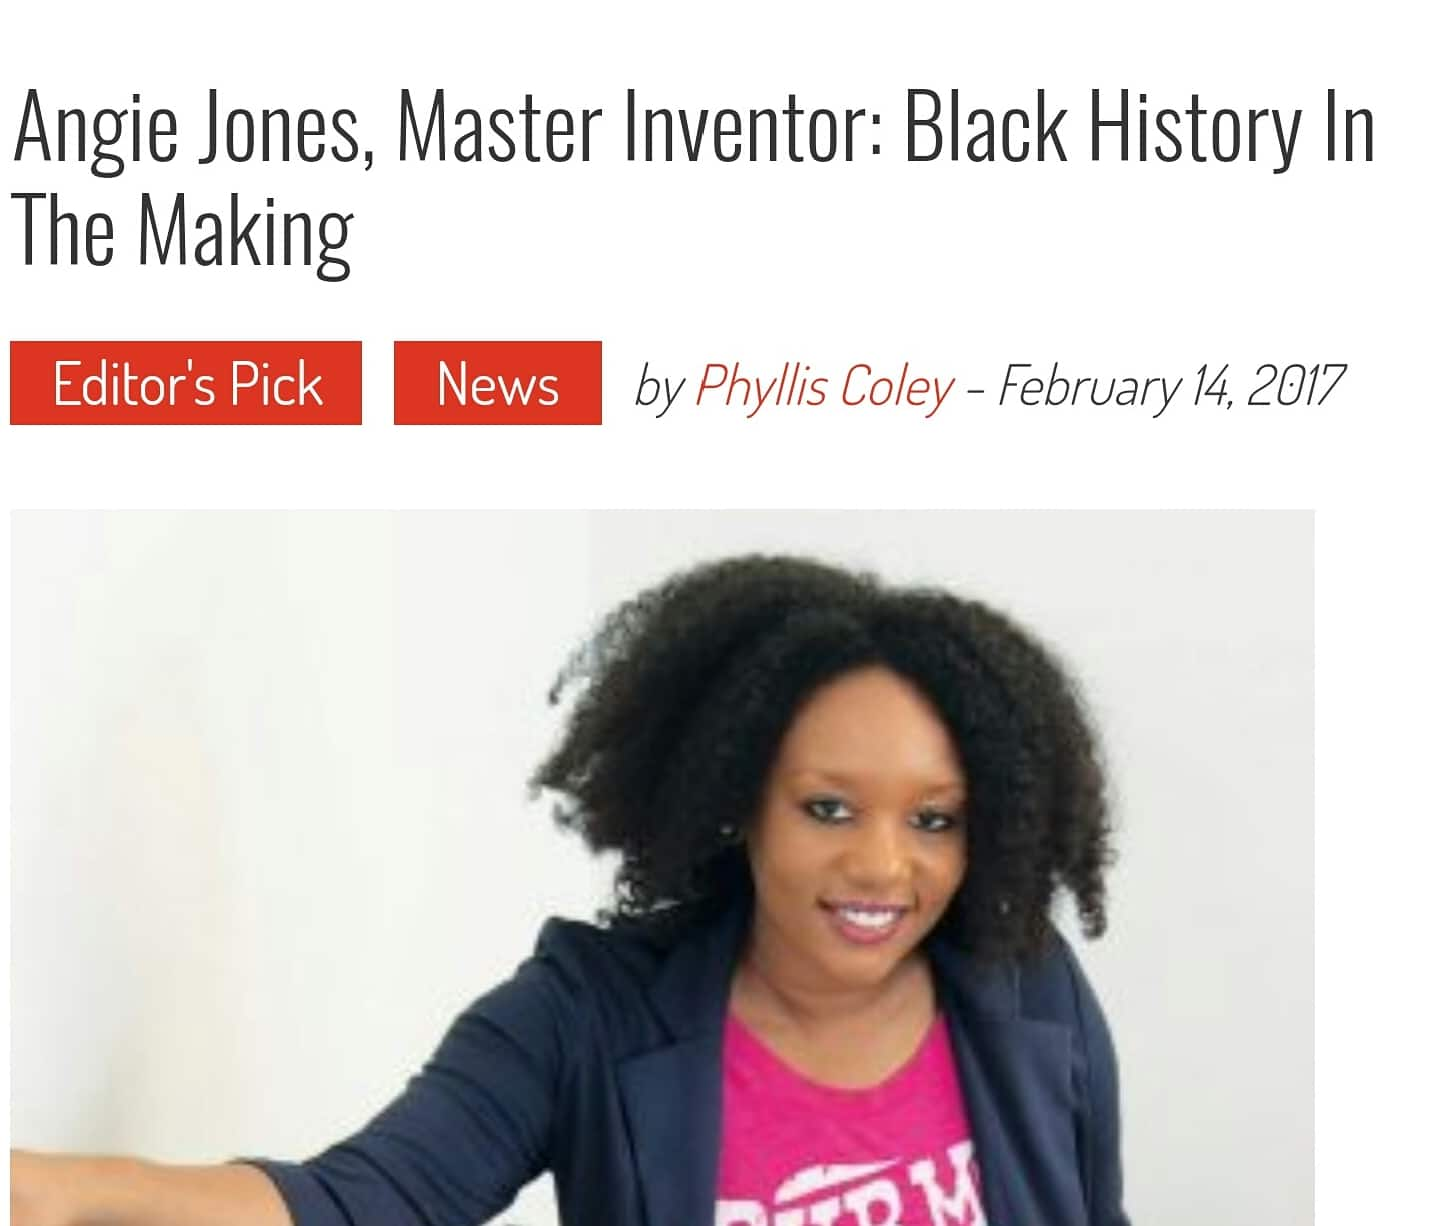 Angie Jones, Master Inventor, Black History in the Making